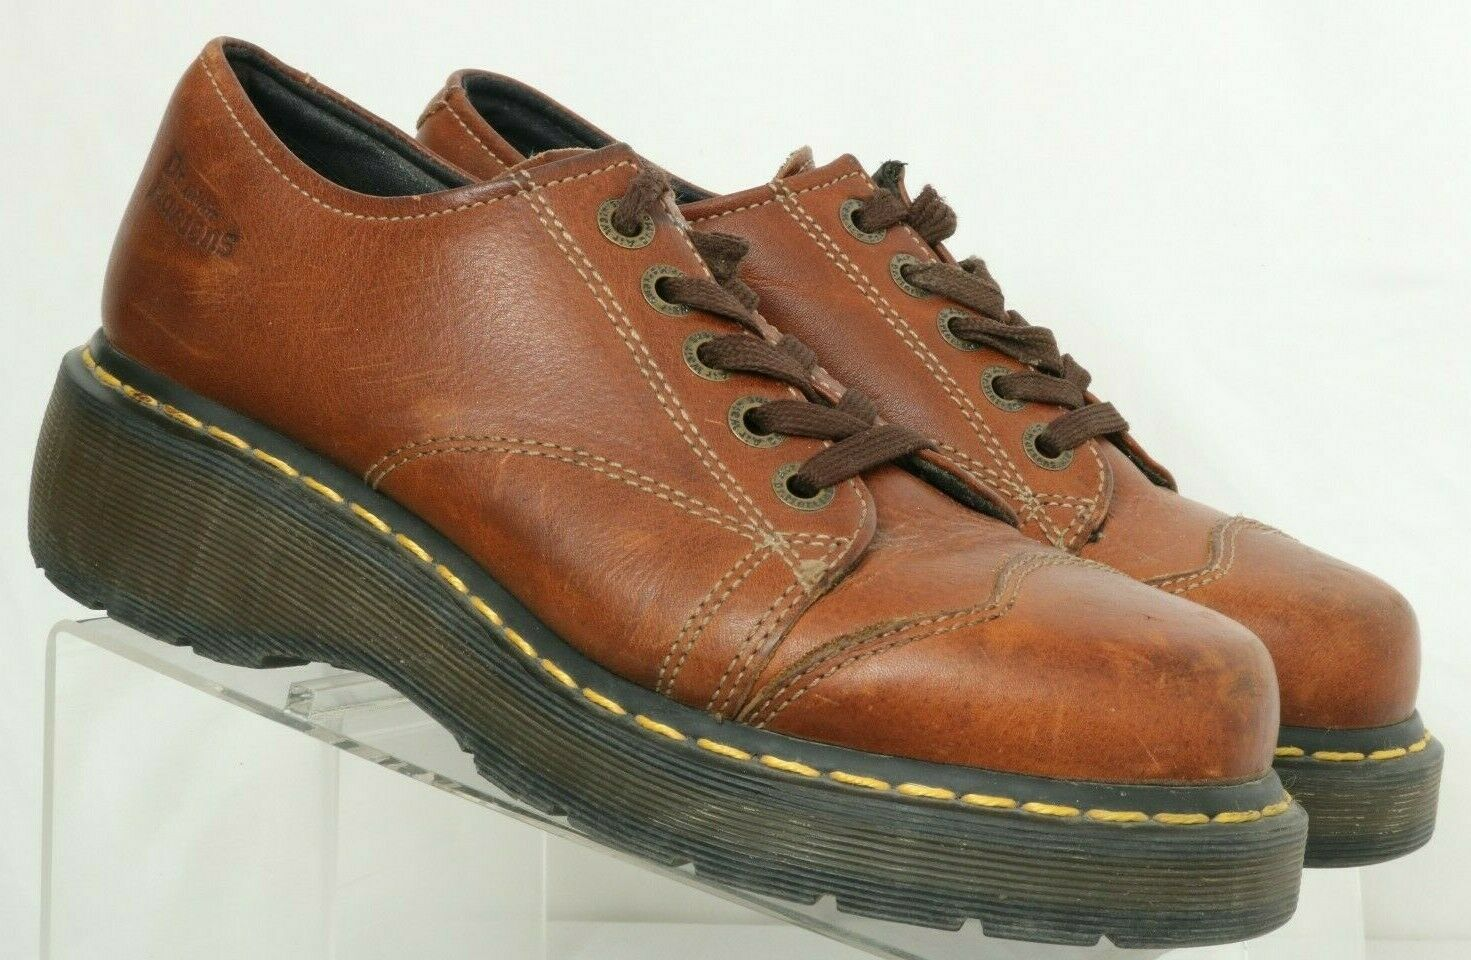 Dr. Martens 8651 Brown Leather Cap Toe Chunky Casual Oxfords Women's US 9